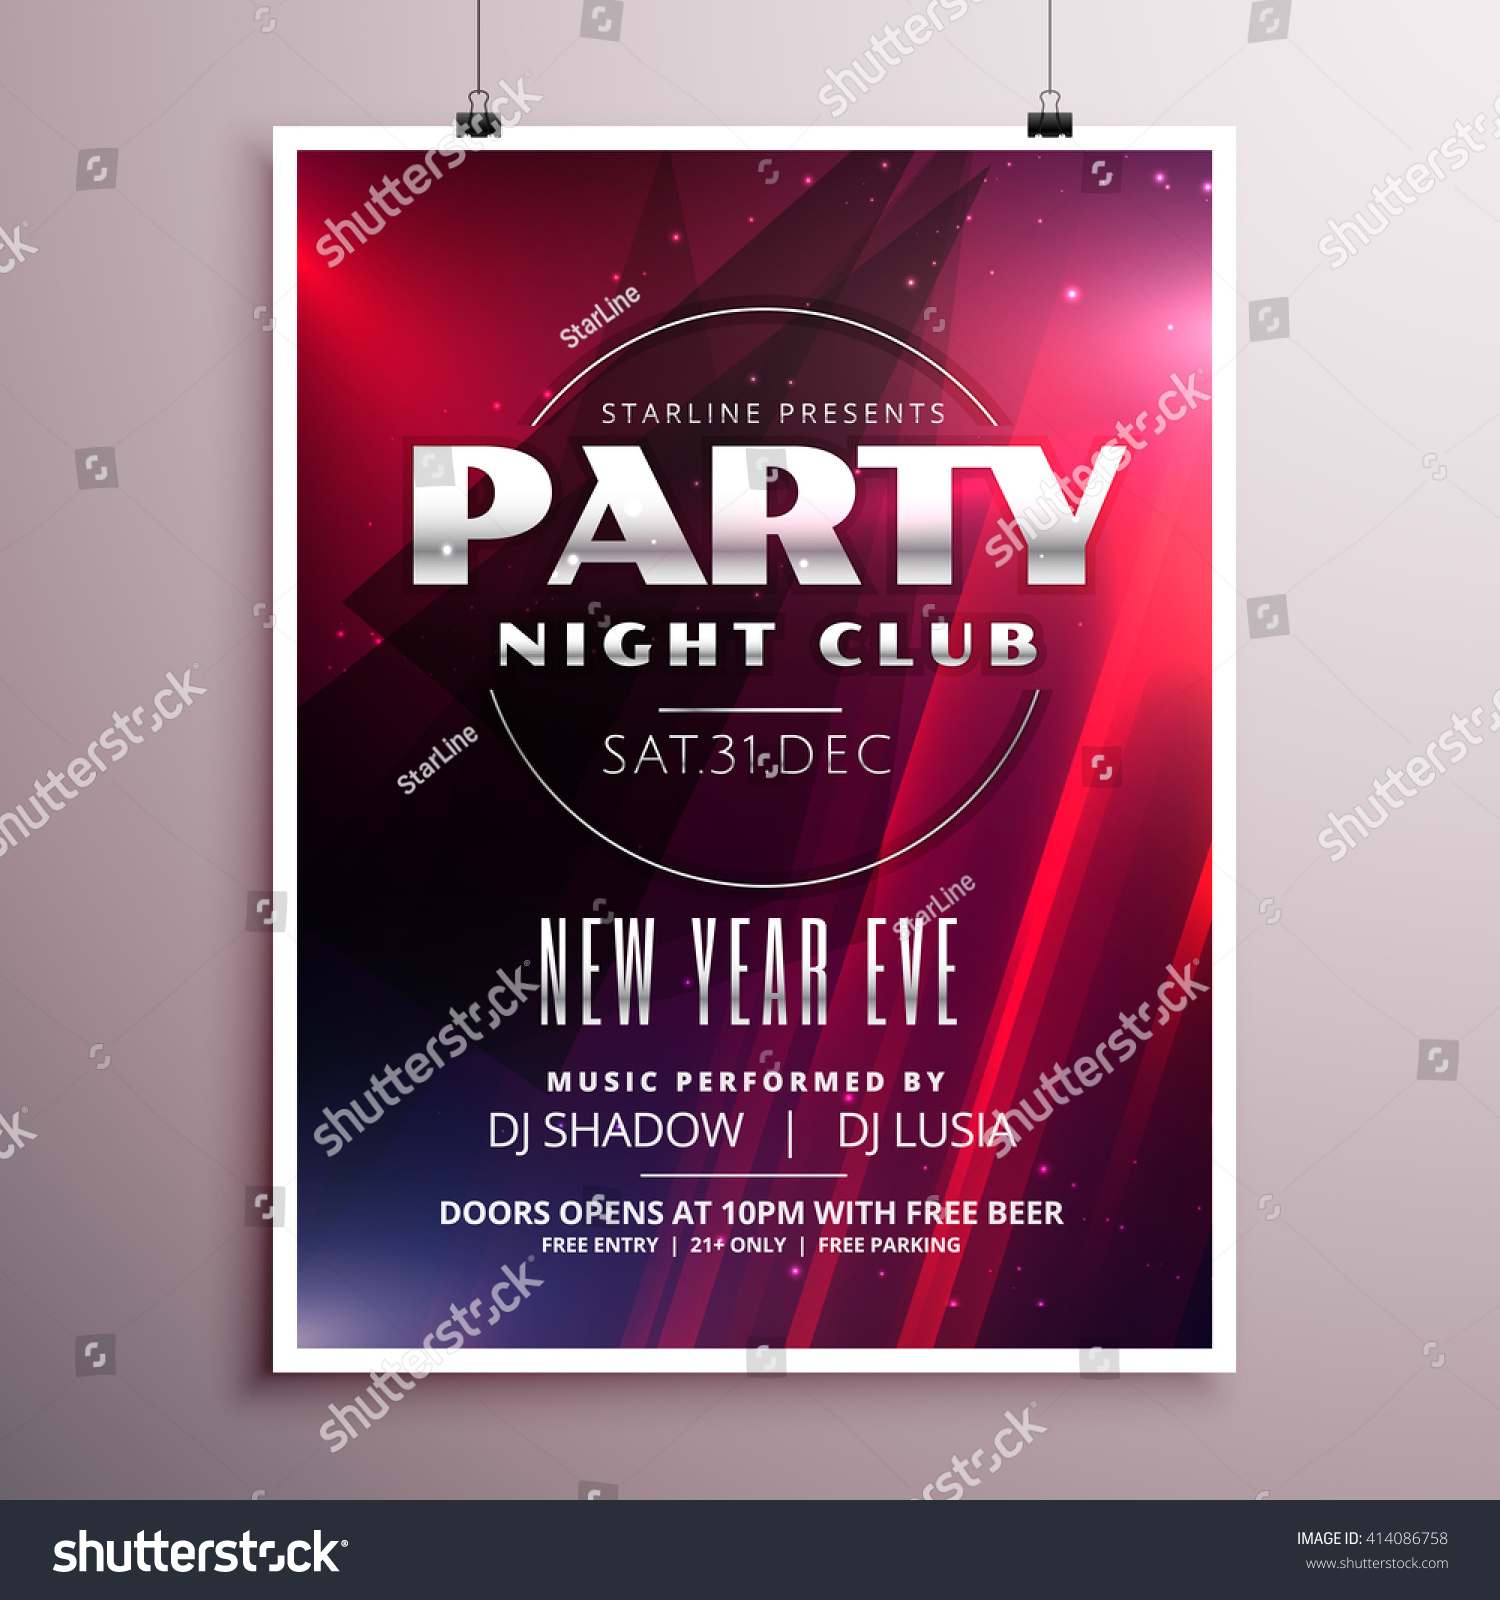 nightclub party flyer template design event stock vector  nightclub party flyer template design event details